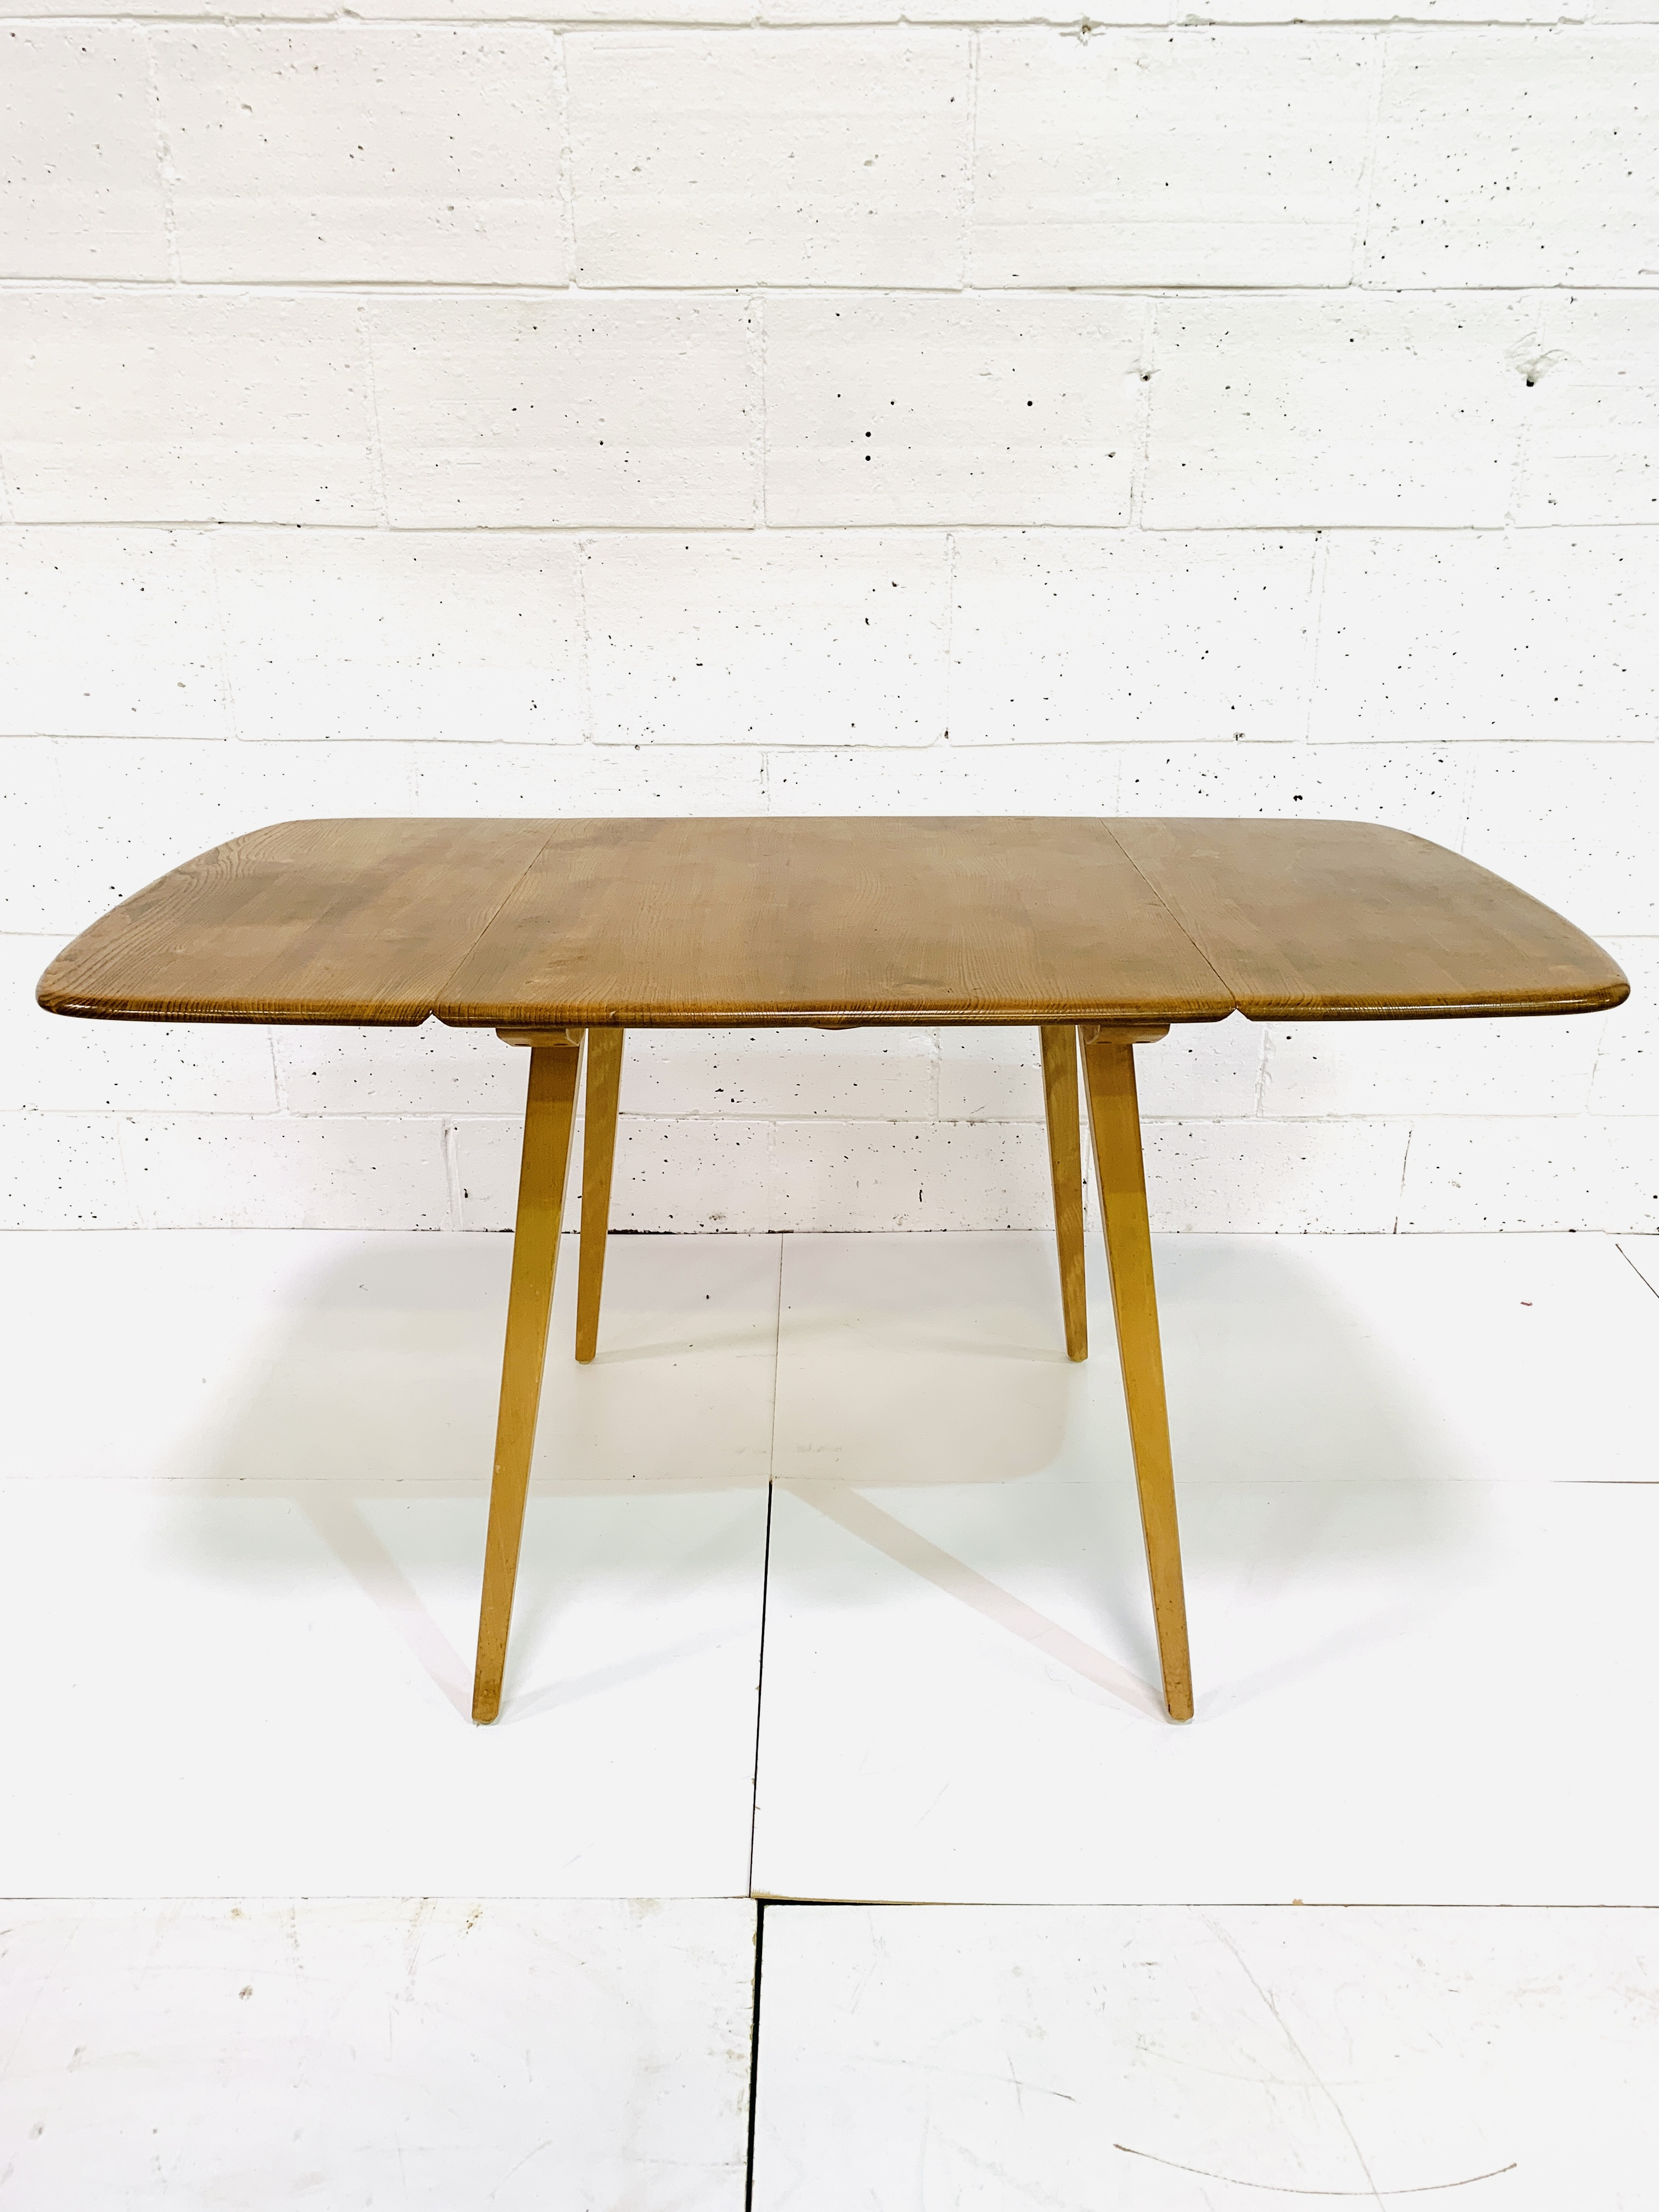 Ercol dropside table - Image 3 of 7